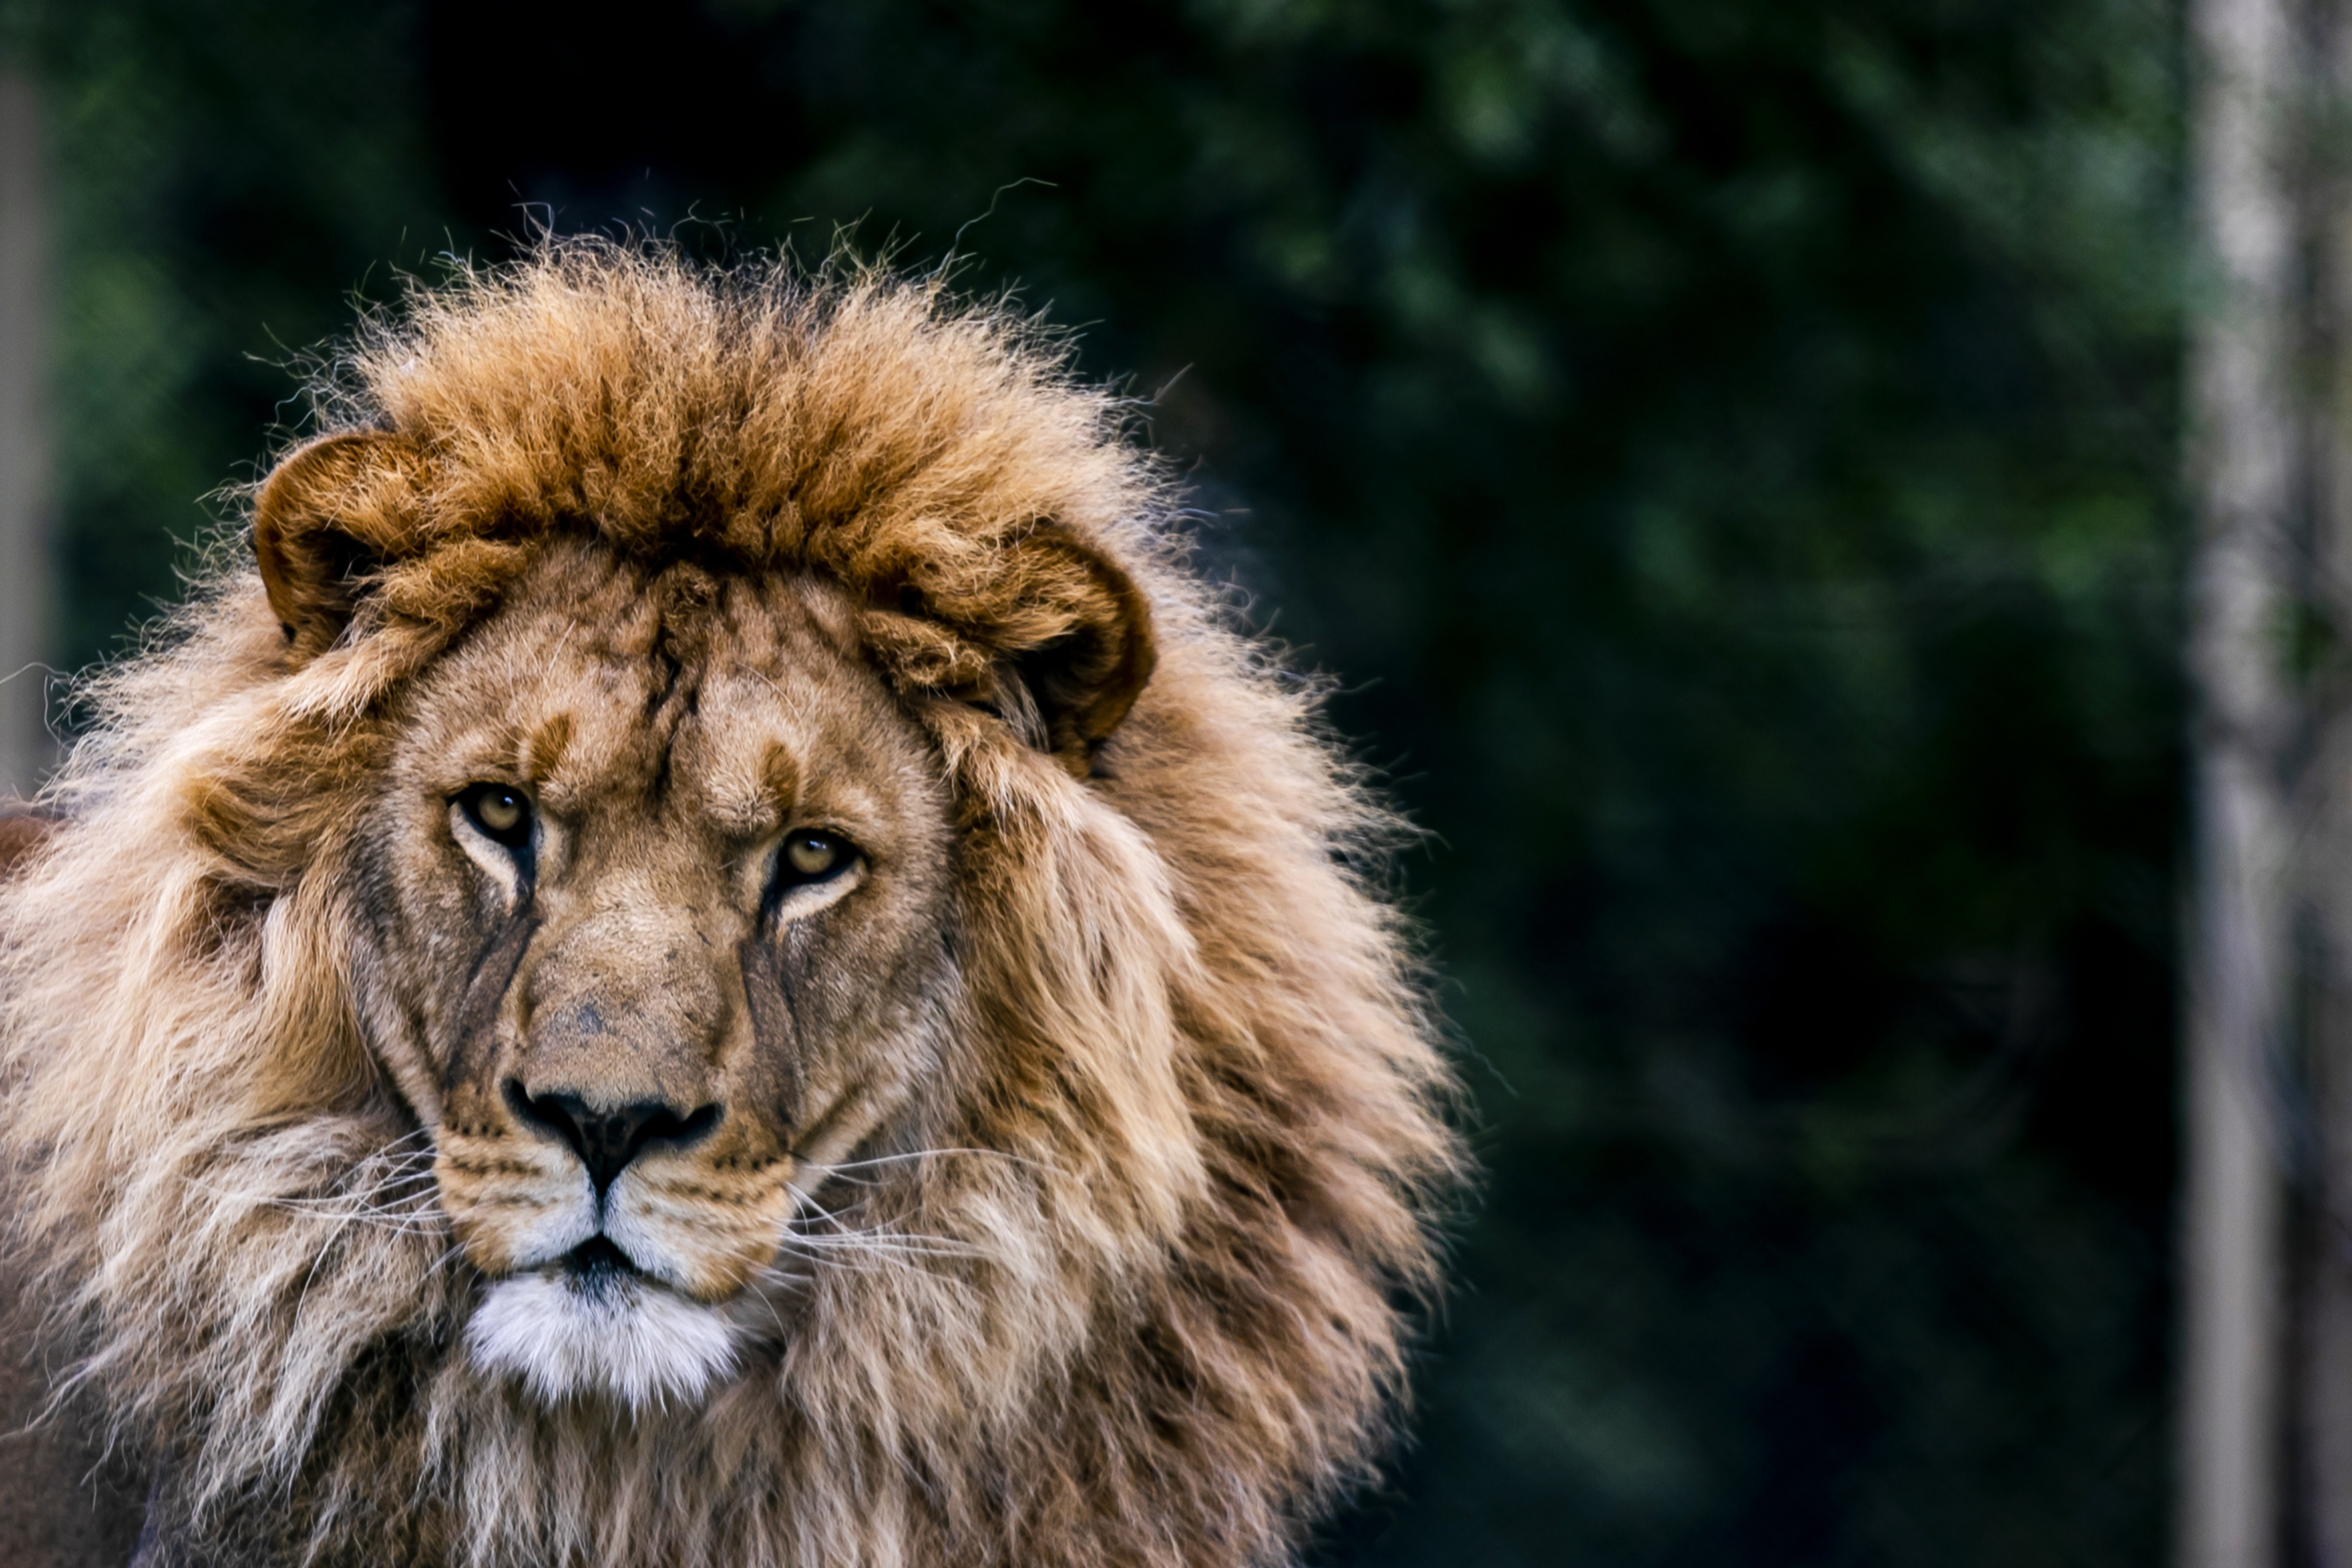 102060 download wallpaper Animals, Lion, Animal, Predator, Big Cat, Wildlife screensavers and pictures for free